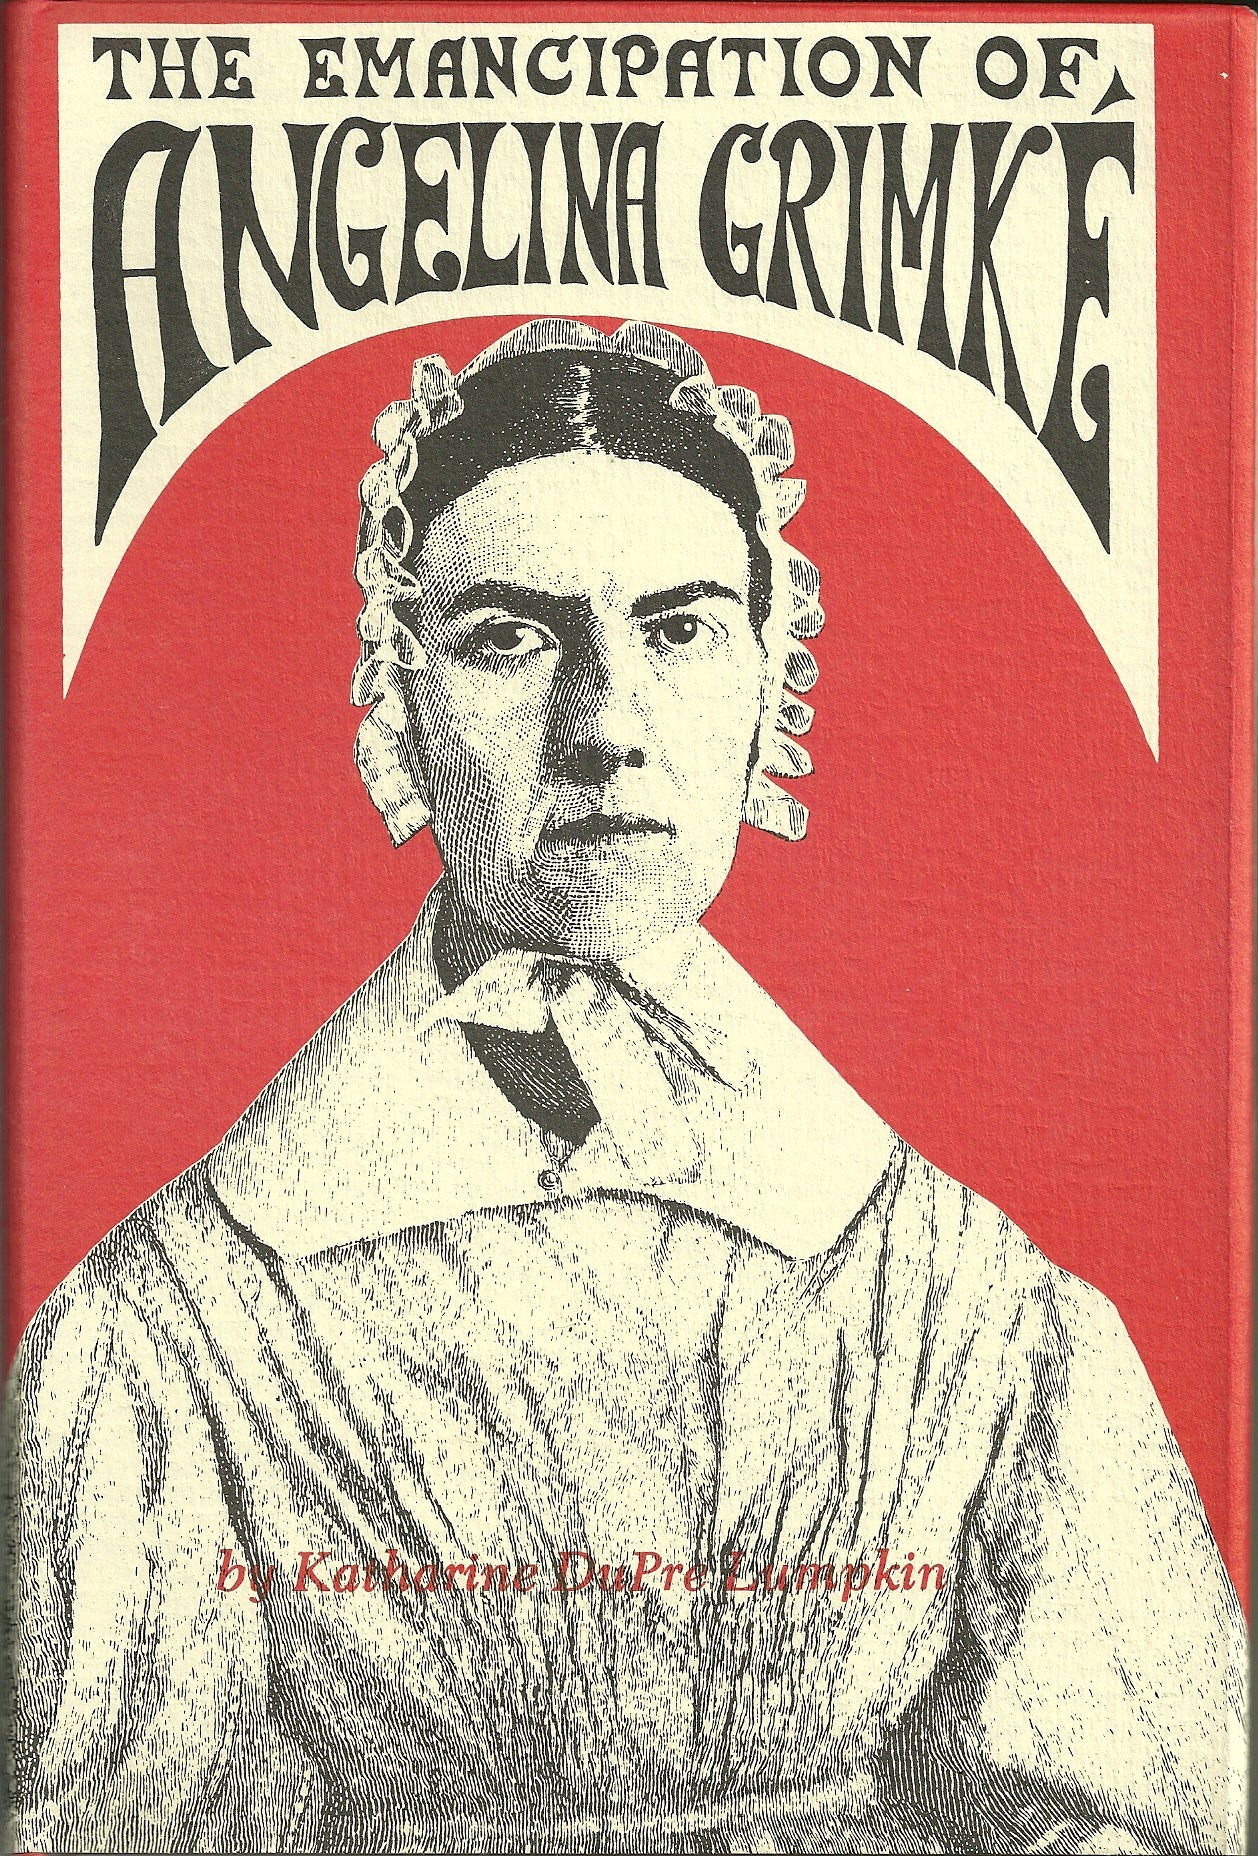 The Emancipation of Angelina Grimke